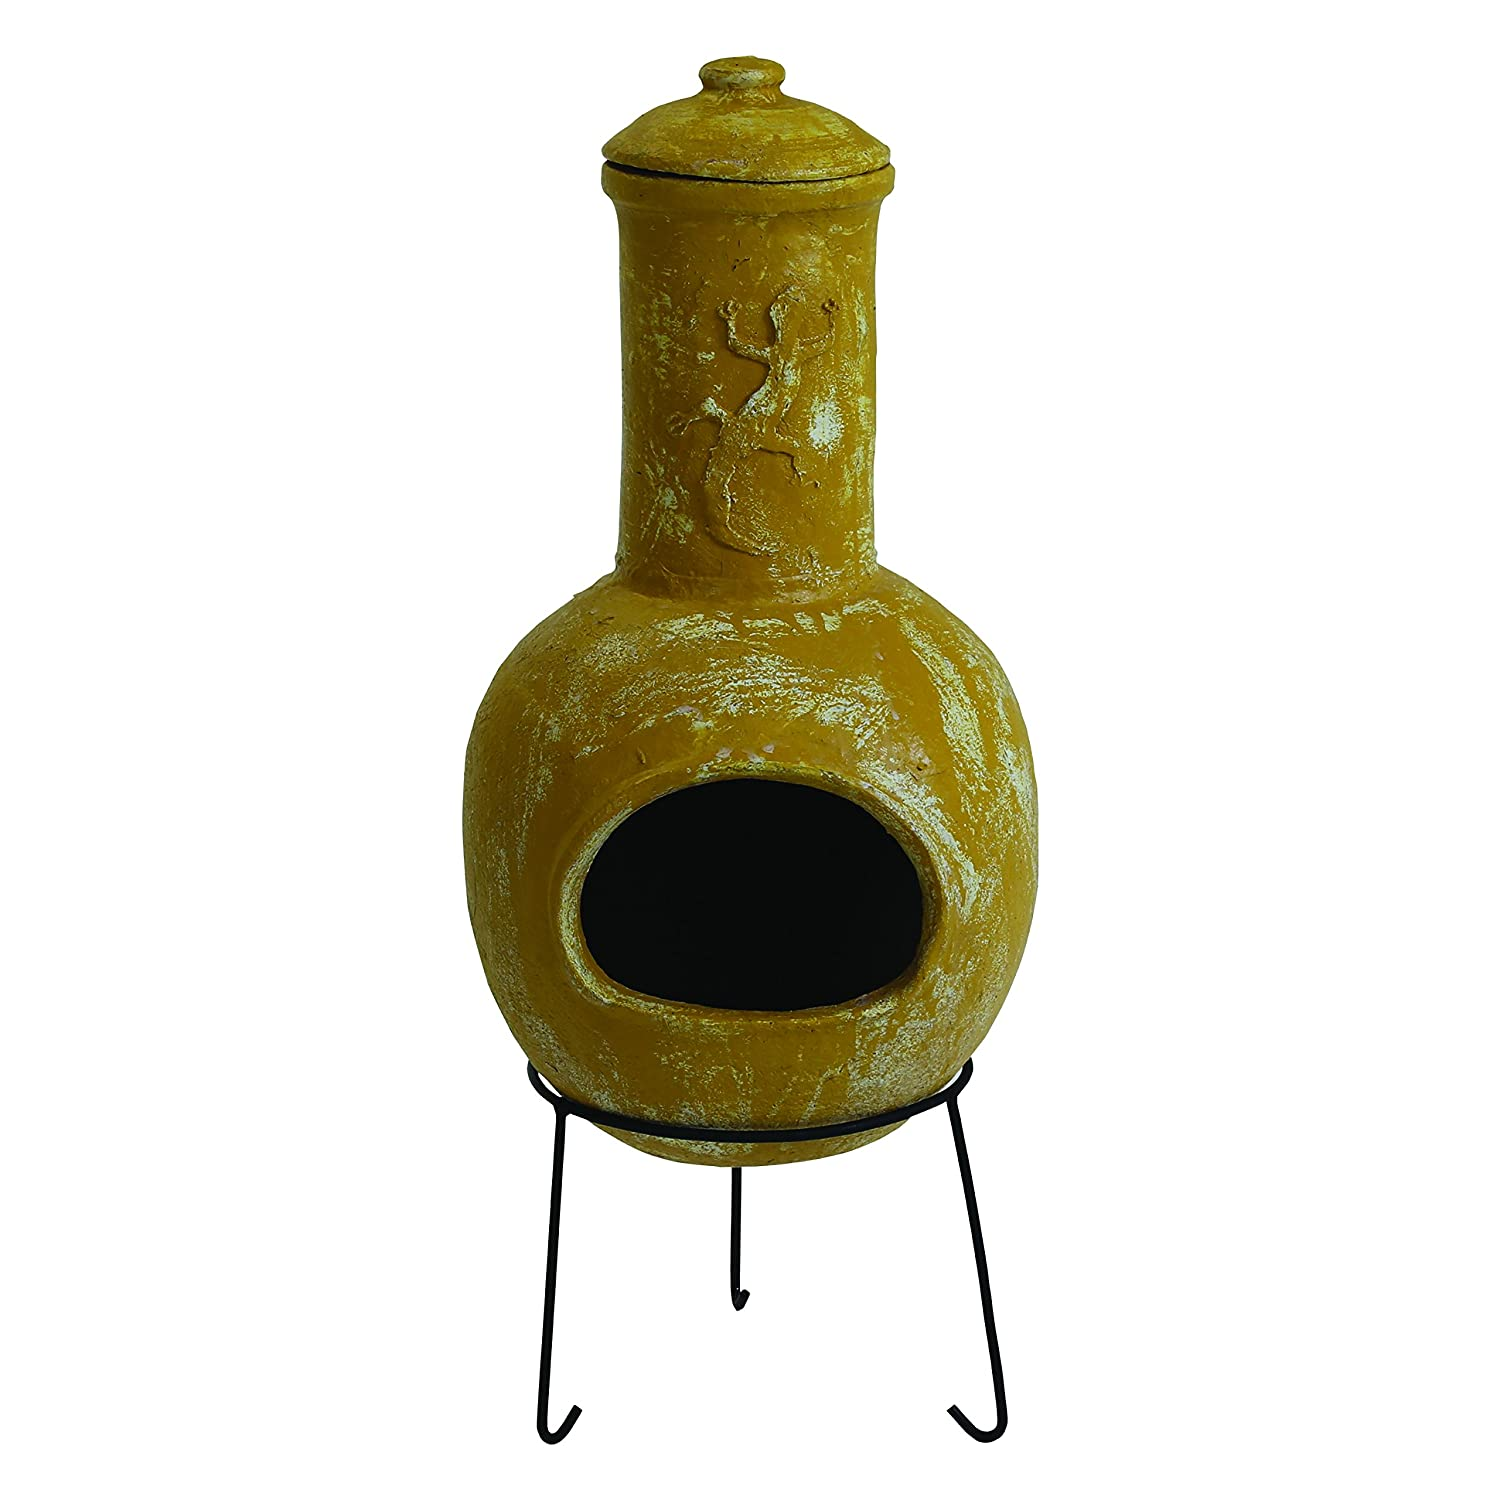 Charles Bentley Garden Outdoor Large Terracotta Clay Chiminea Mexican Chiminea Patio Heater